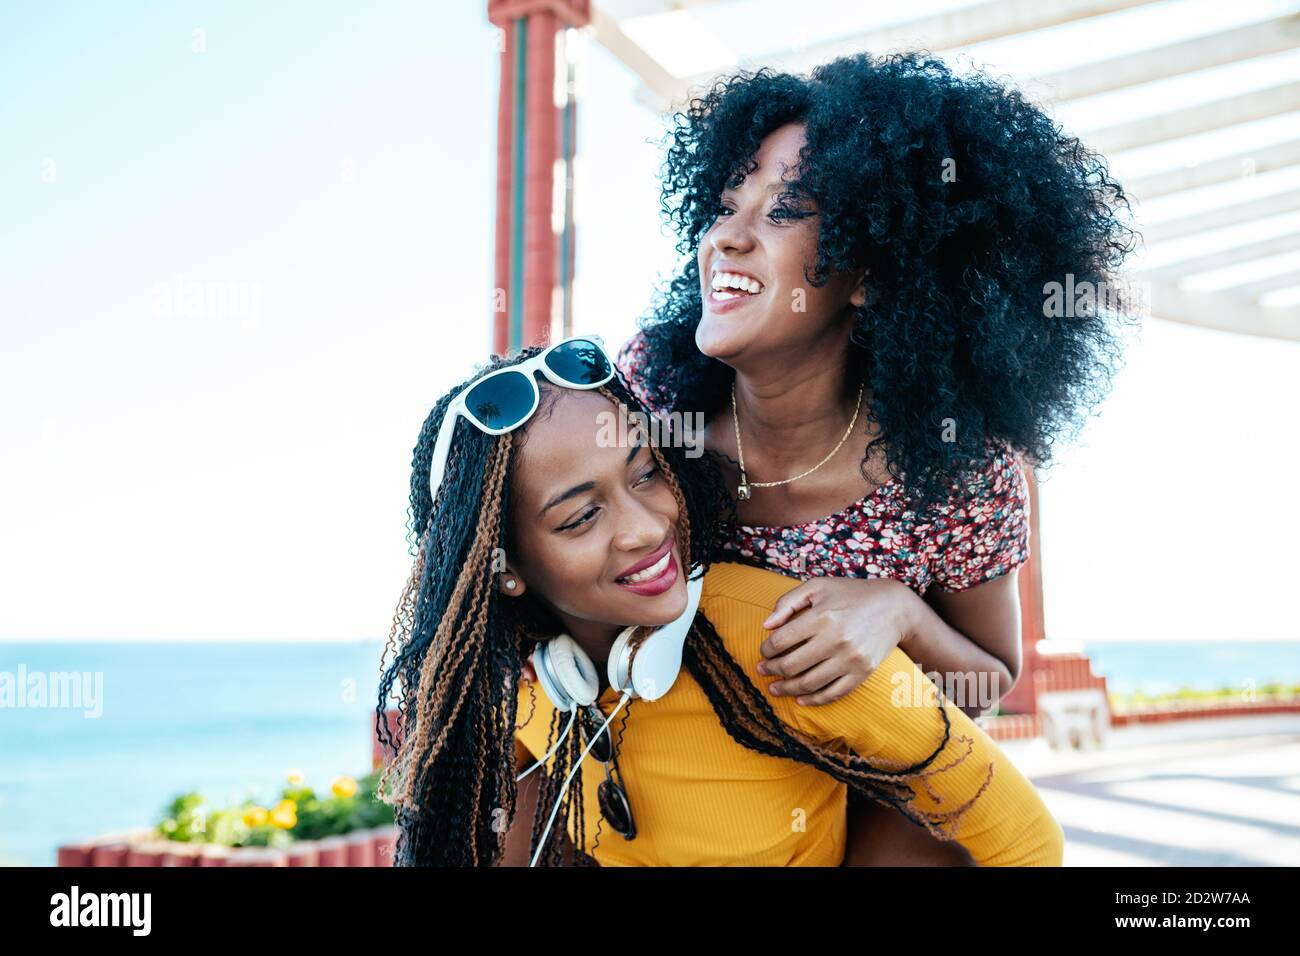 Cheerful ethnic woman with curly hair piggybacking delighted female friend with braids while having fun on promenade at weekend in summer Stock Photo